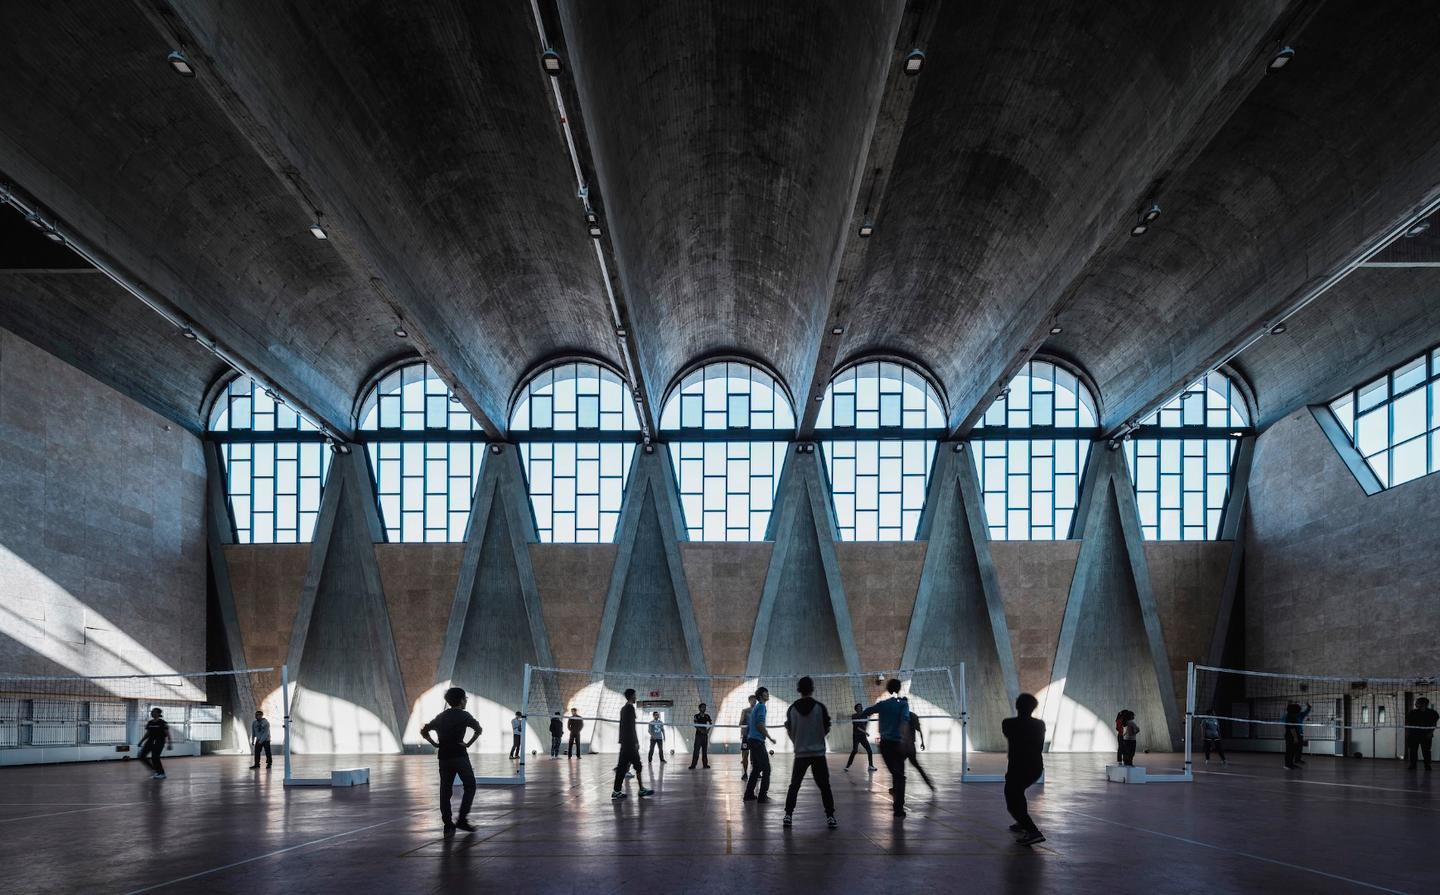 Winner Terrence Zhang took this runner-up photograph of the gymnasium in the New Campus of Tianjin University, China